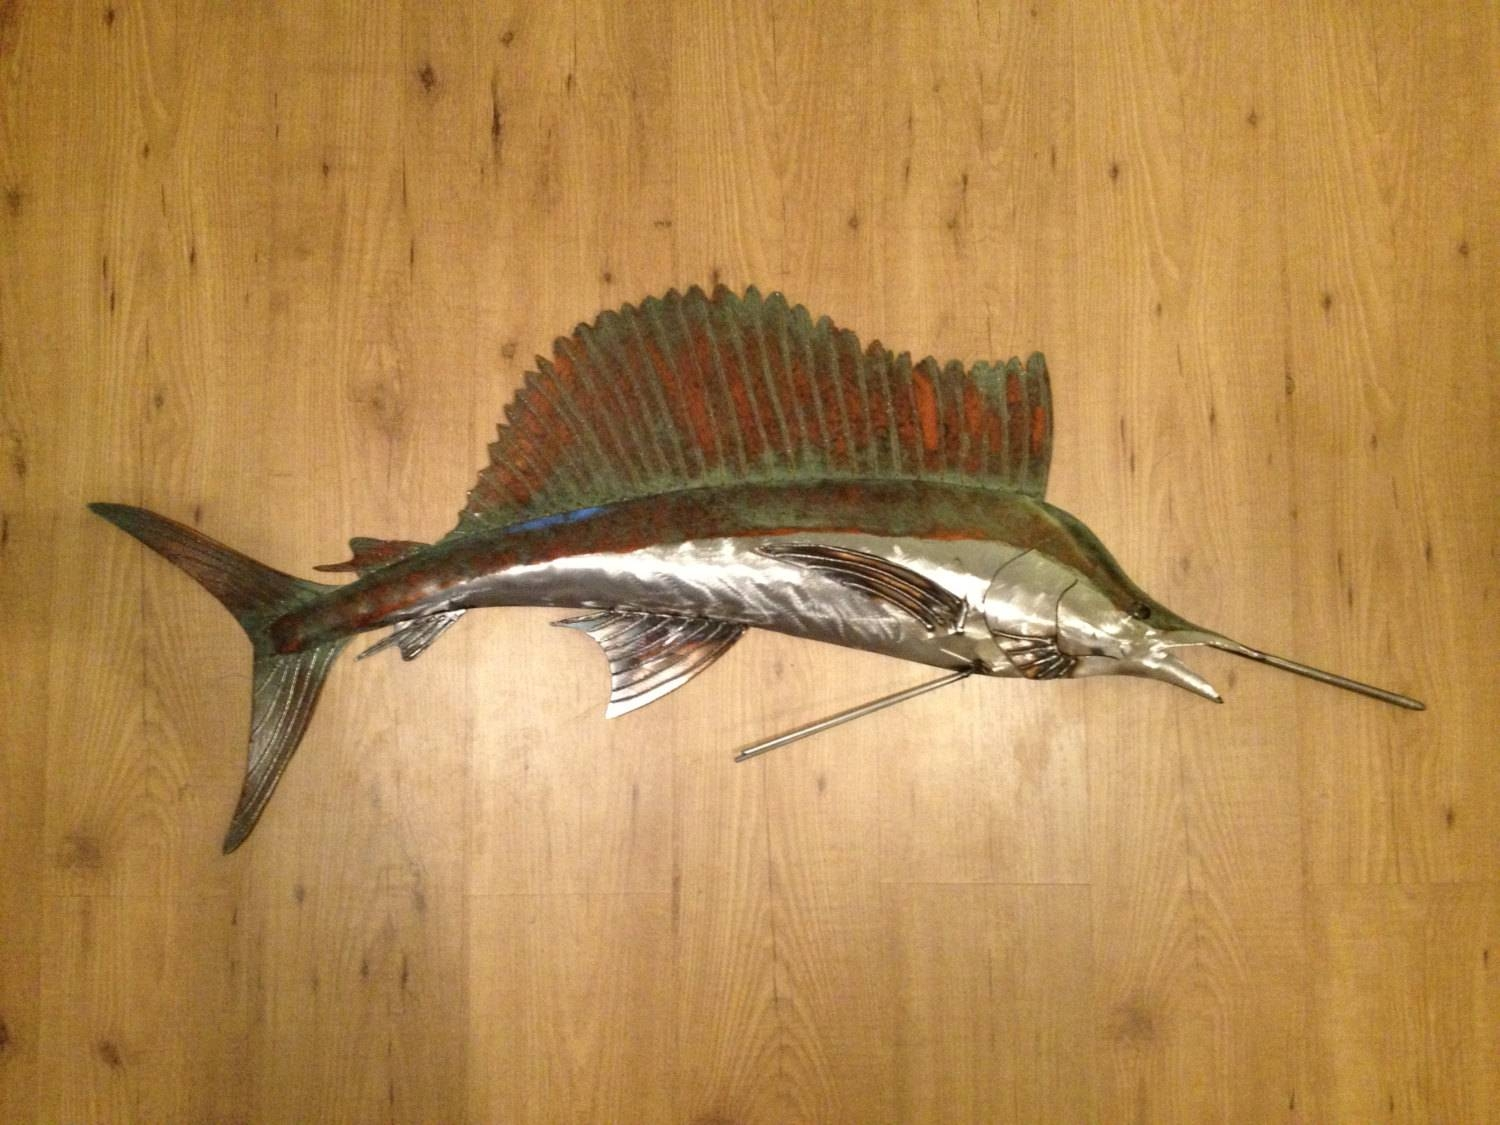 Sailfish 48In Metal Wall Art Fish Sculpture Handmade Beach Within Most Up To Date Handmade Metal Wall Art (View 13 of 20)